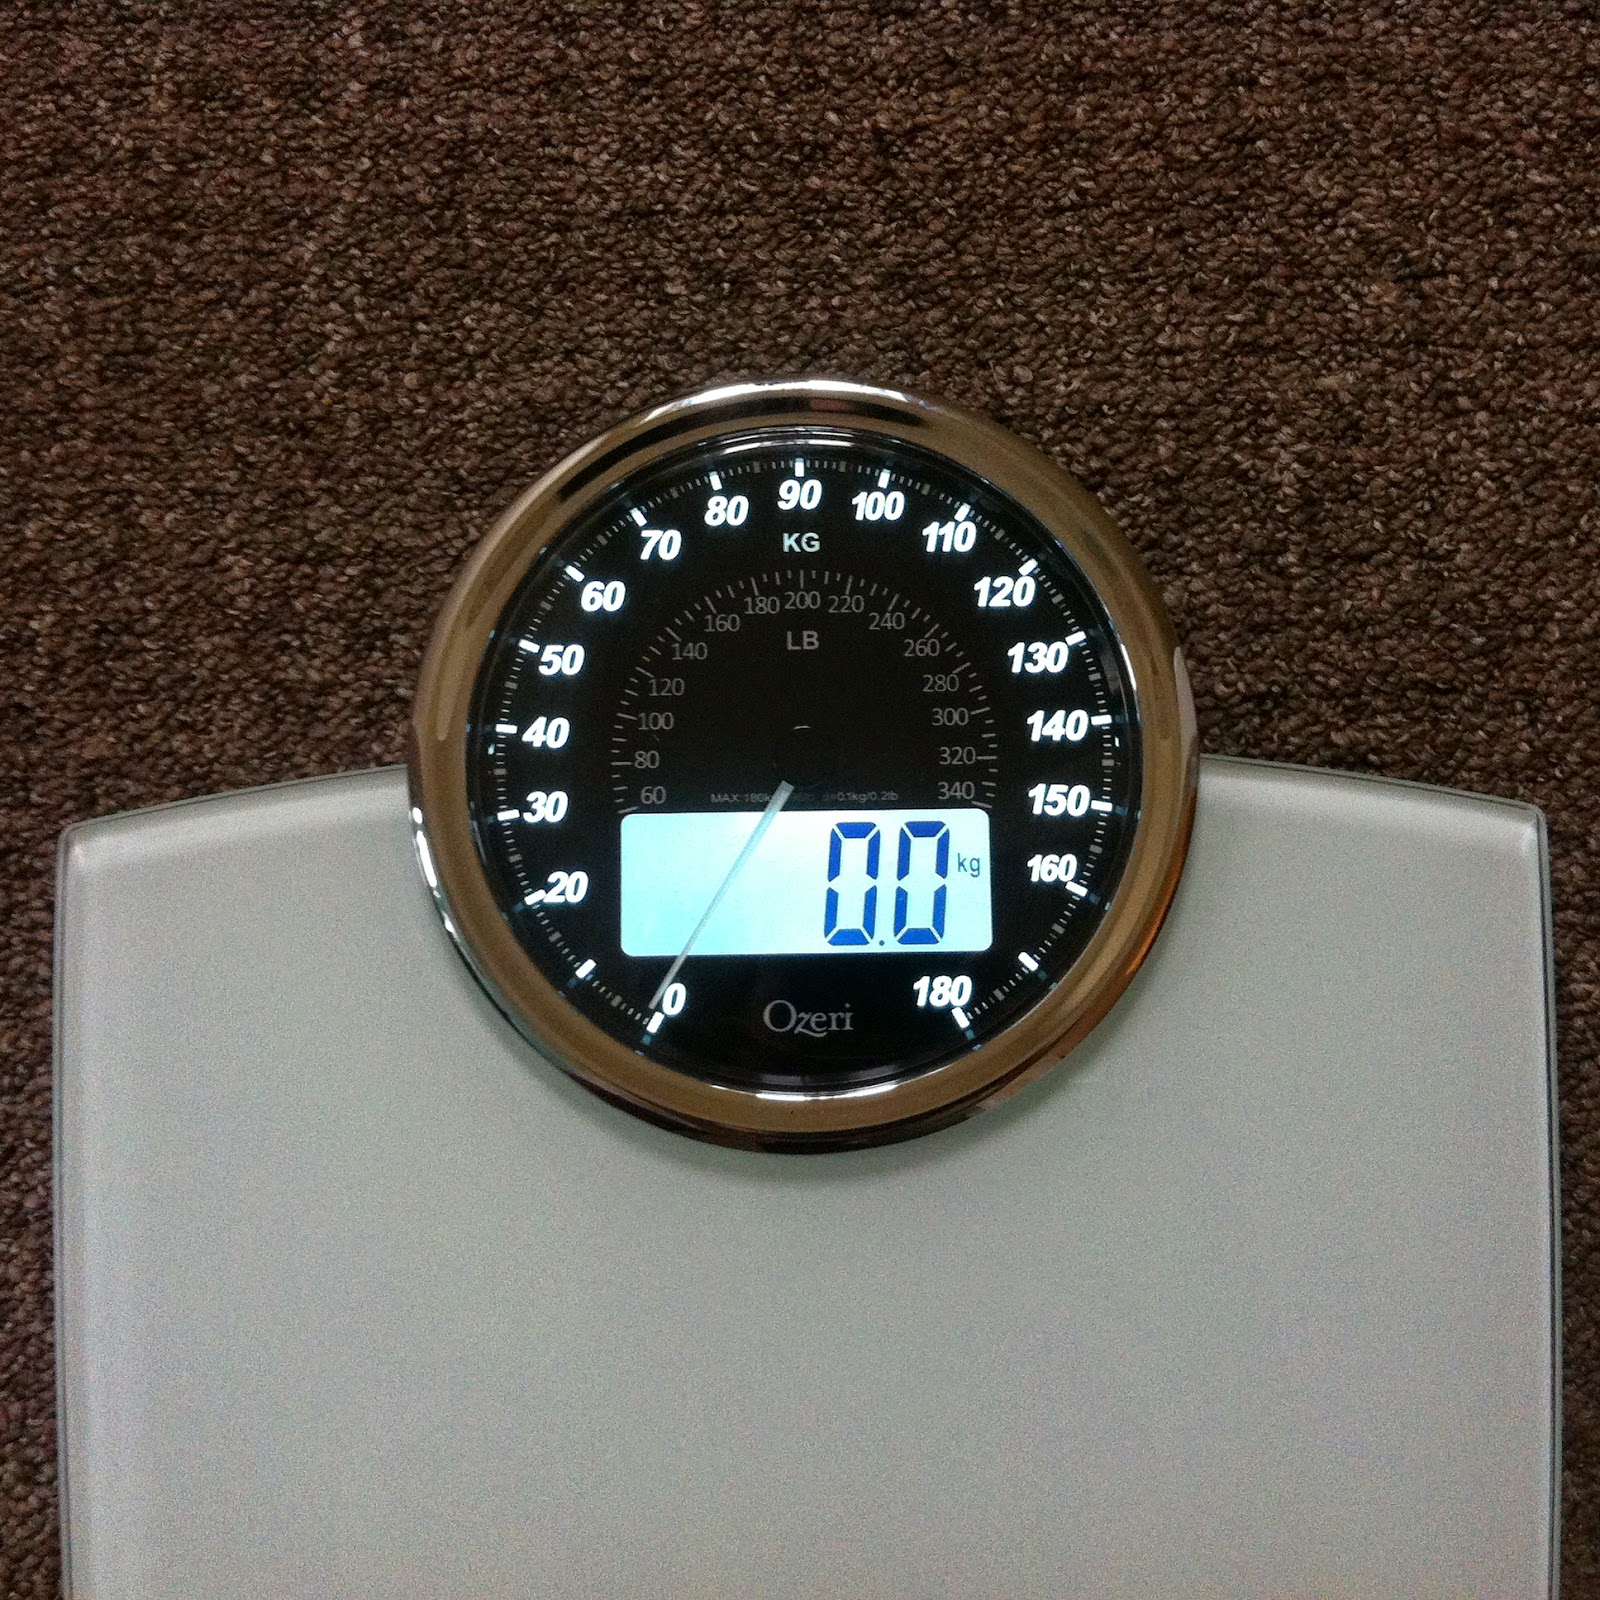 Retro bathroom scales - The Scales Can Weigh Up To 180 Kg 400 Lbs And It Will Calibrate Itself Automatically And Also Automatically Turns Off To Conserve Battery Life